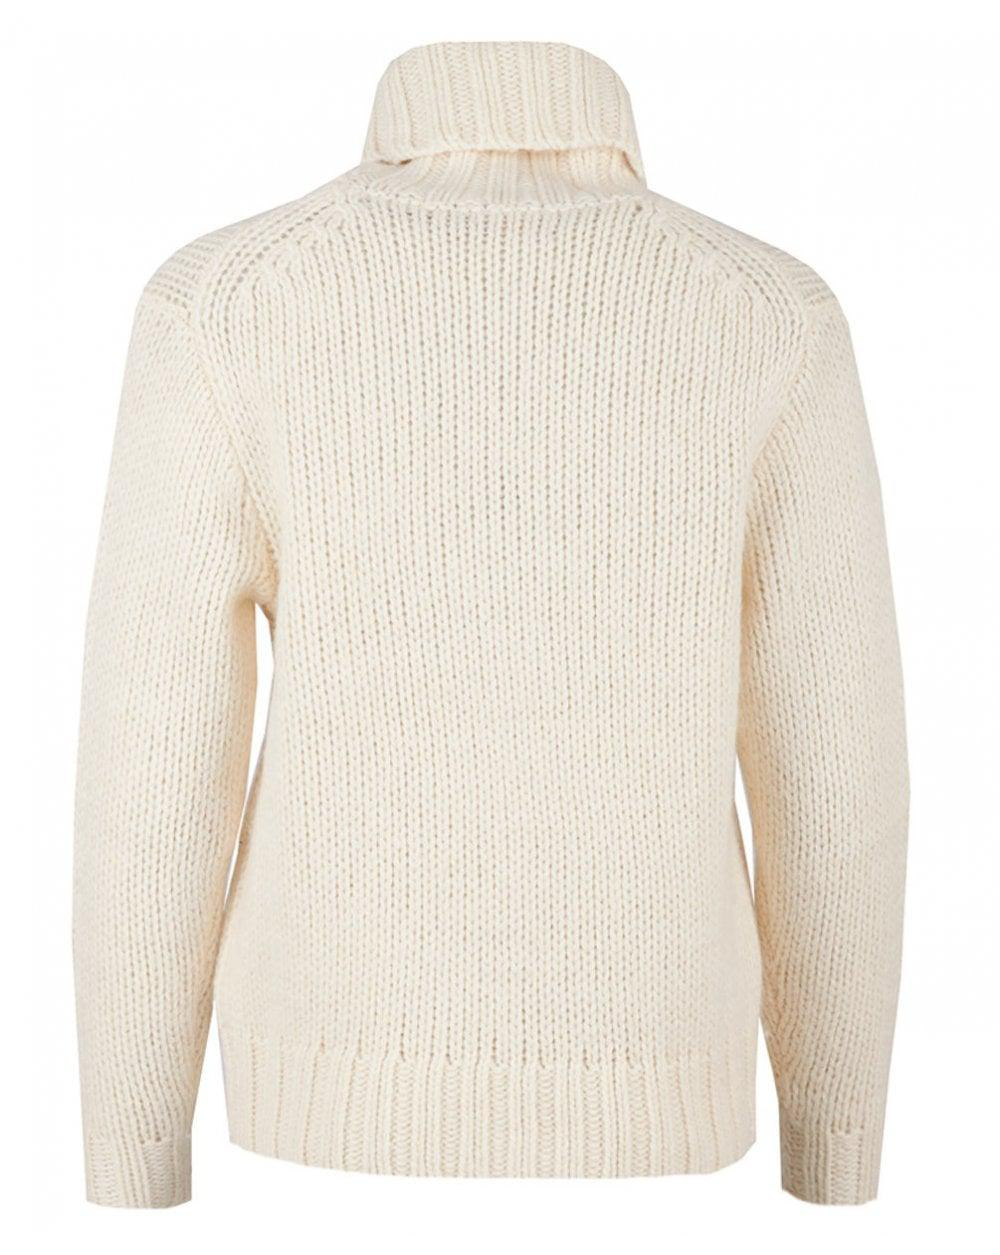 Polo Ralph Lauren Graphic Roll Neck Long Sleeved Knit in Natural - Lyst cfd4de59a2e3